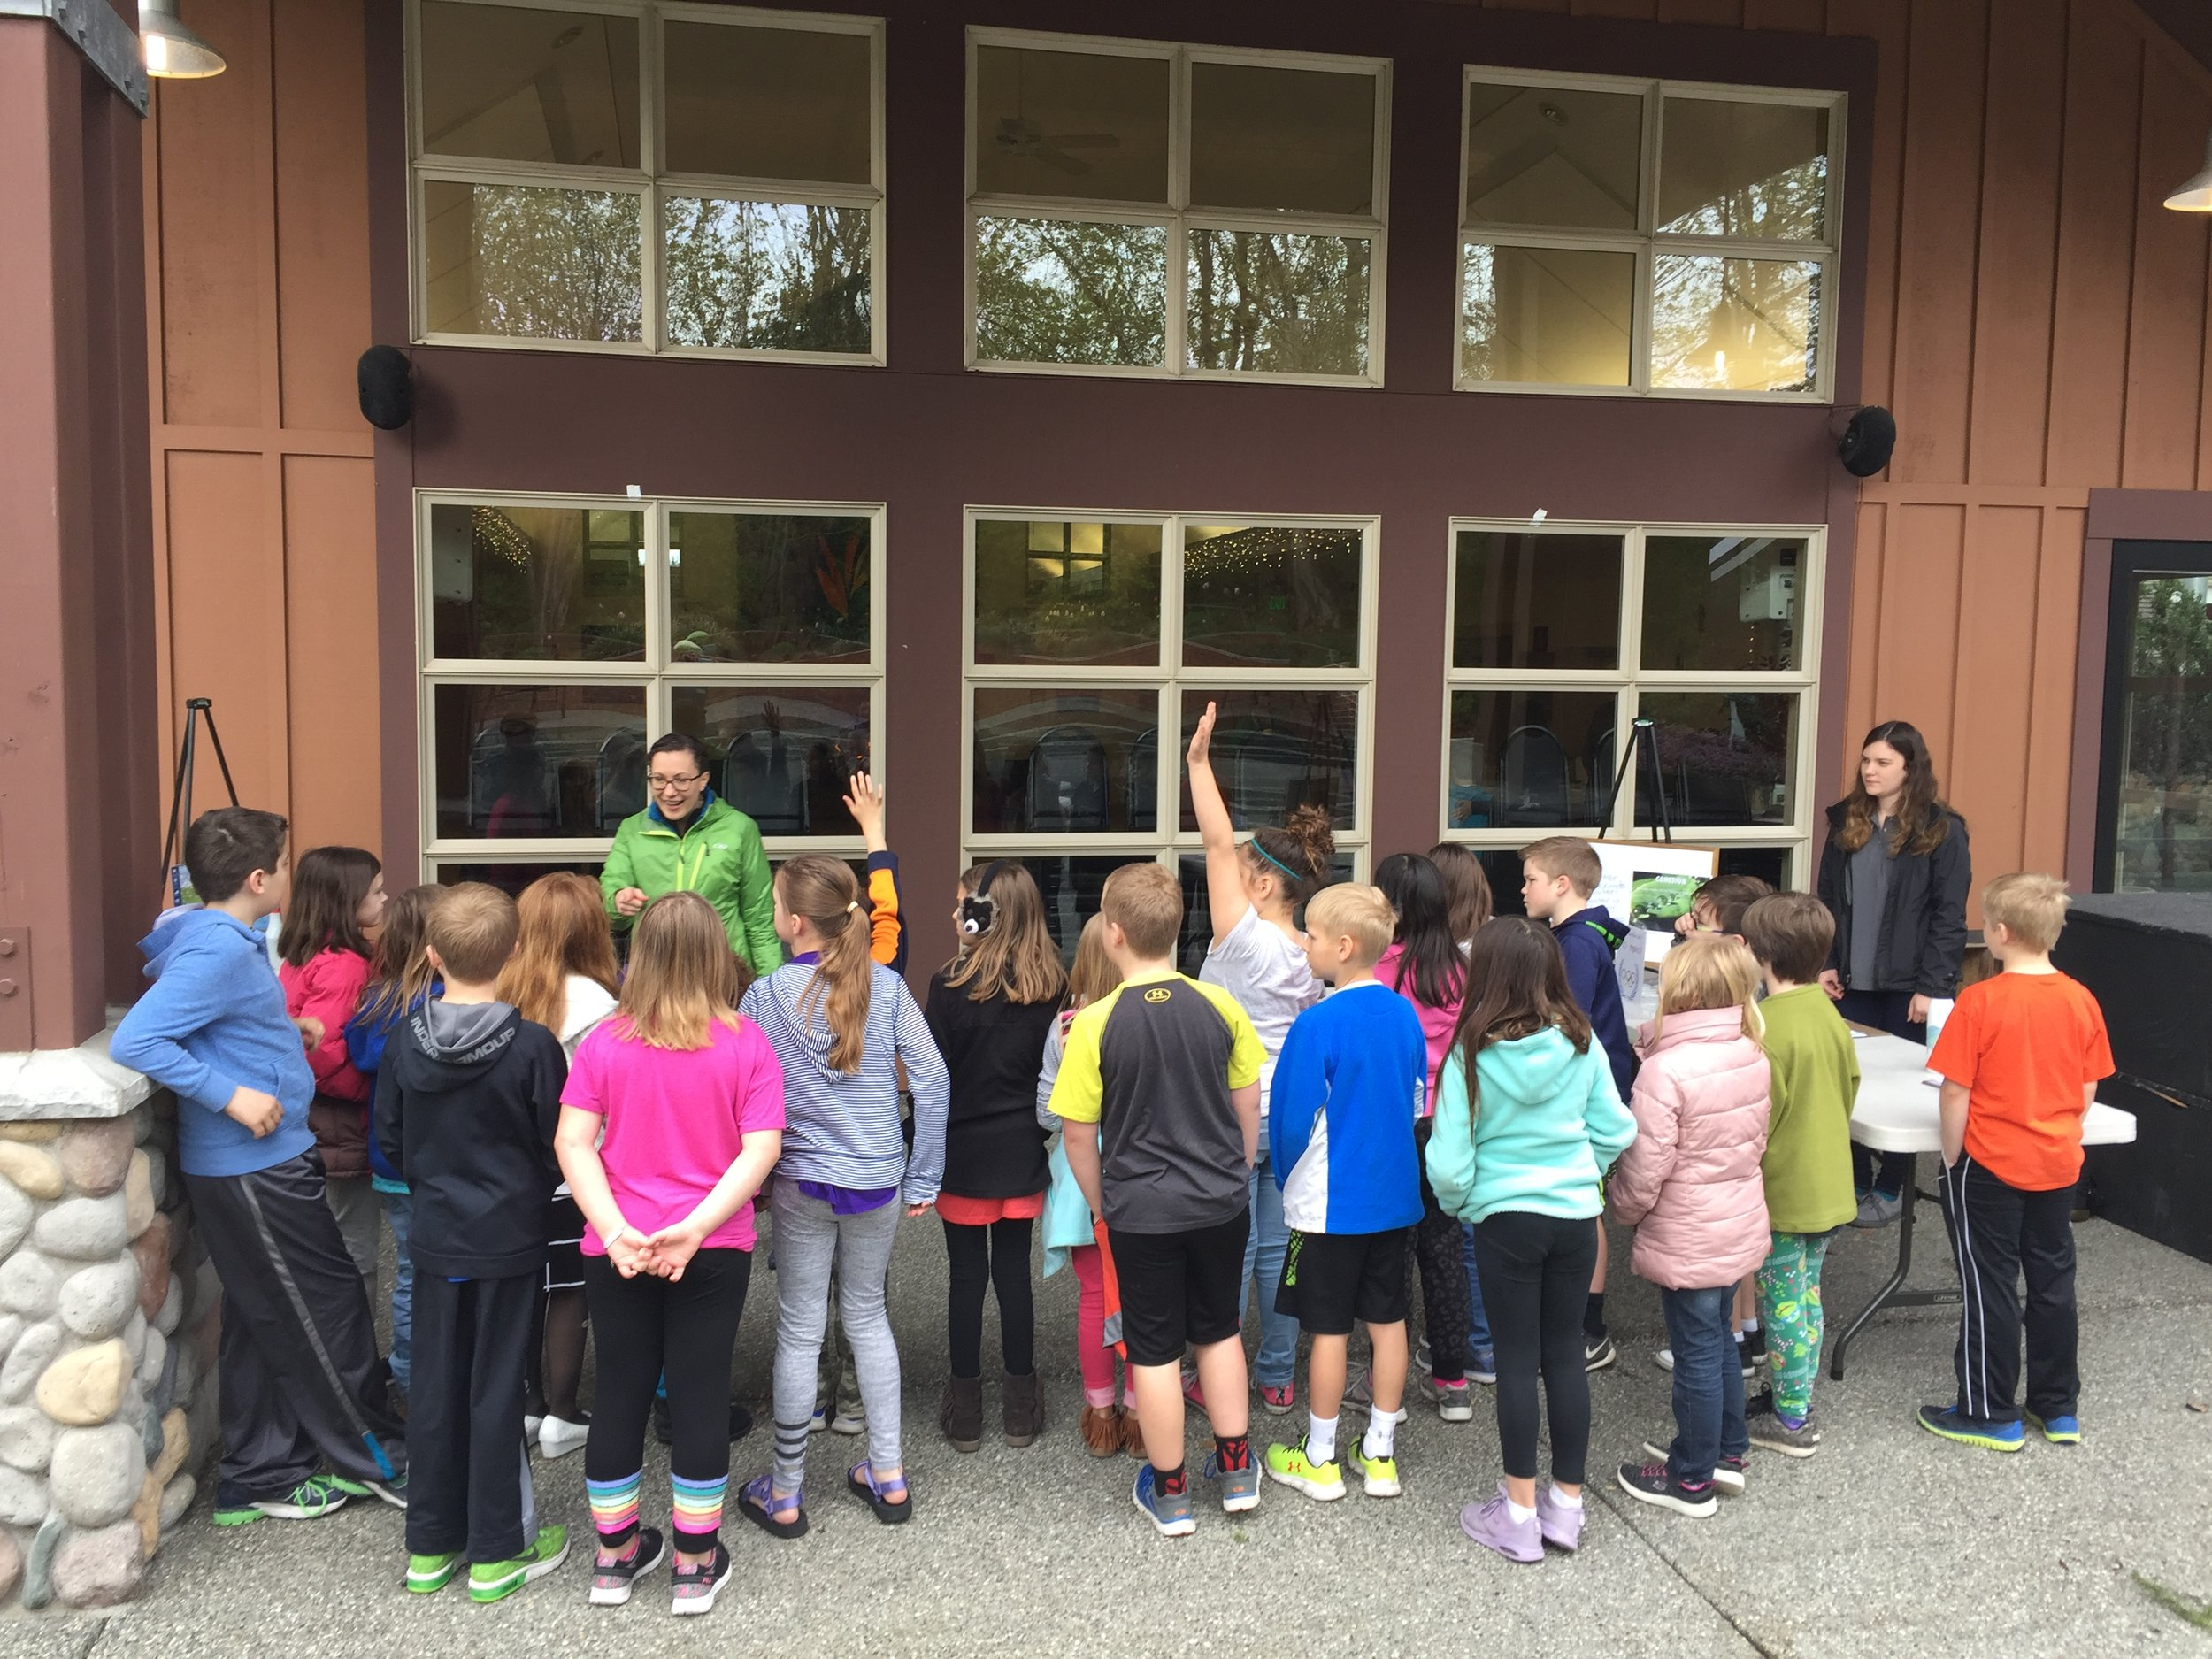 Outreach and Education Coordinator, Laura Goff welcomes a group of students at the beginning of the lesson.